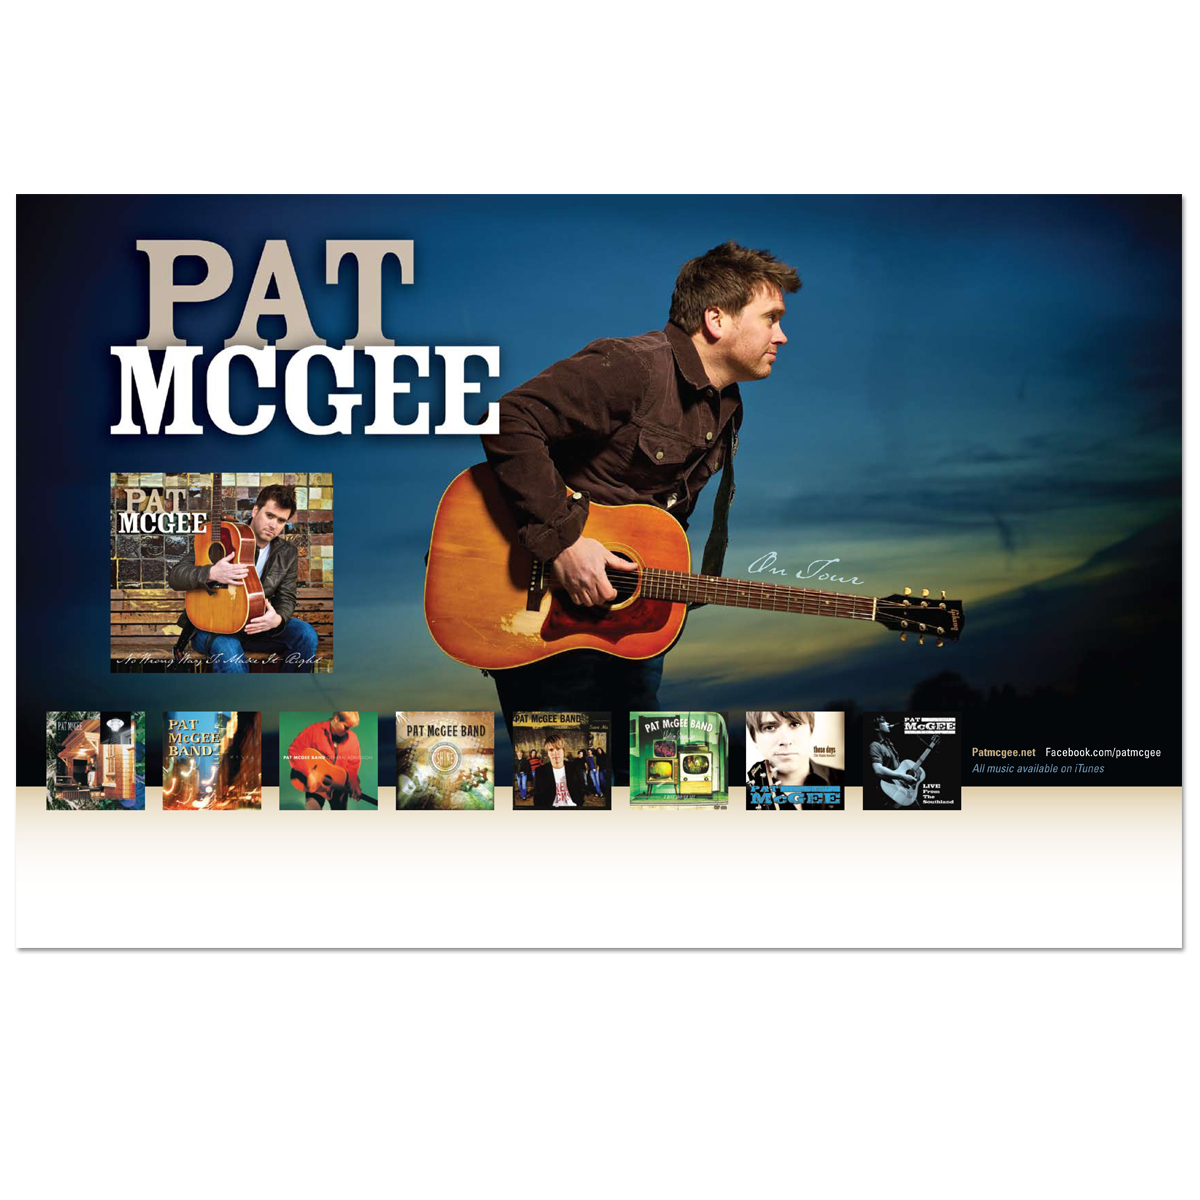 Pat McGee 2011 Tour Poster - Autographed